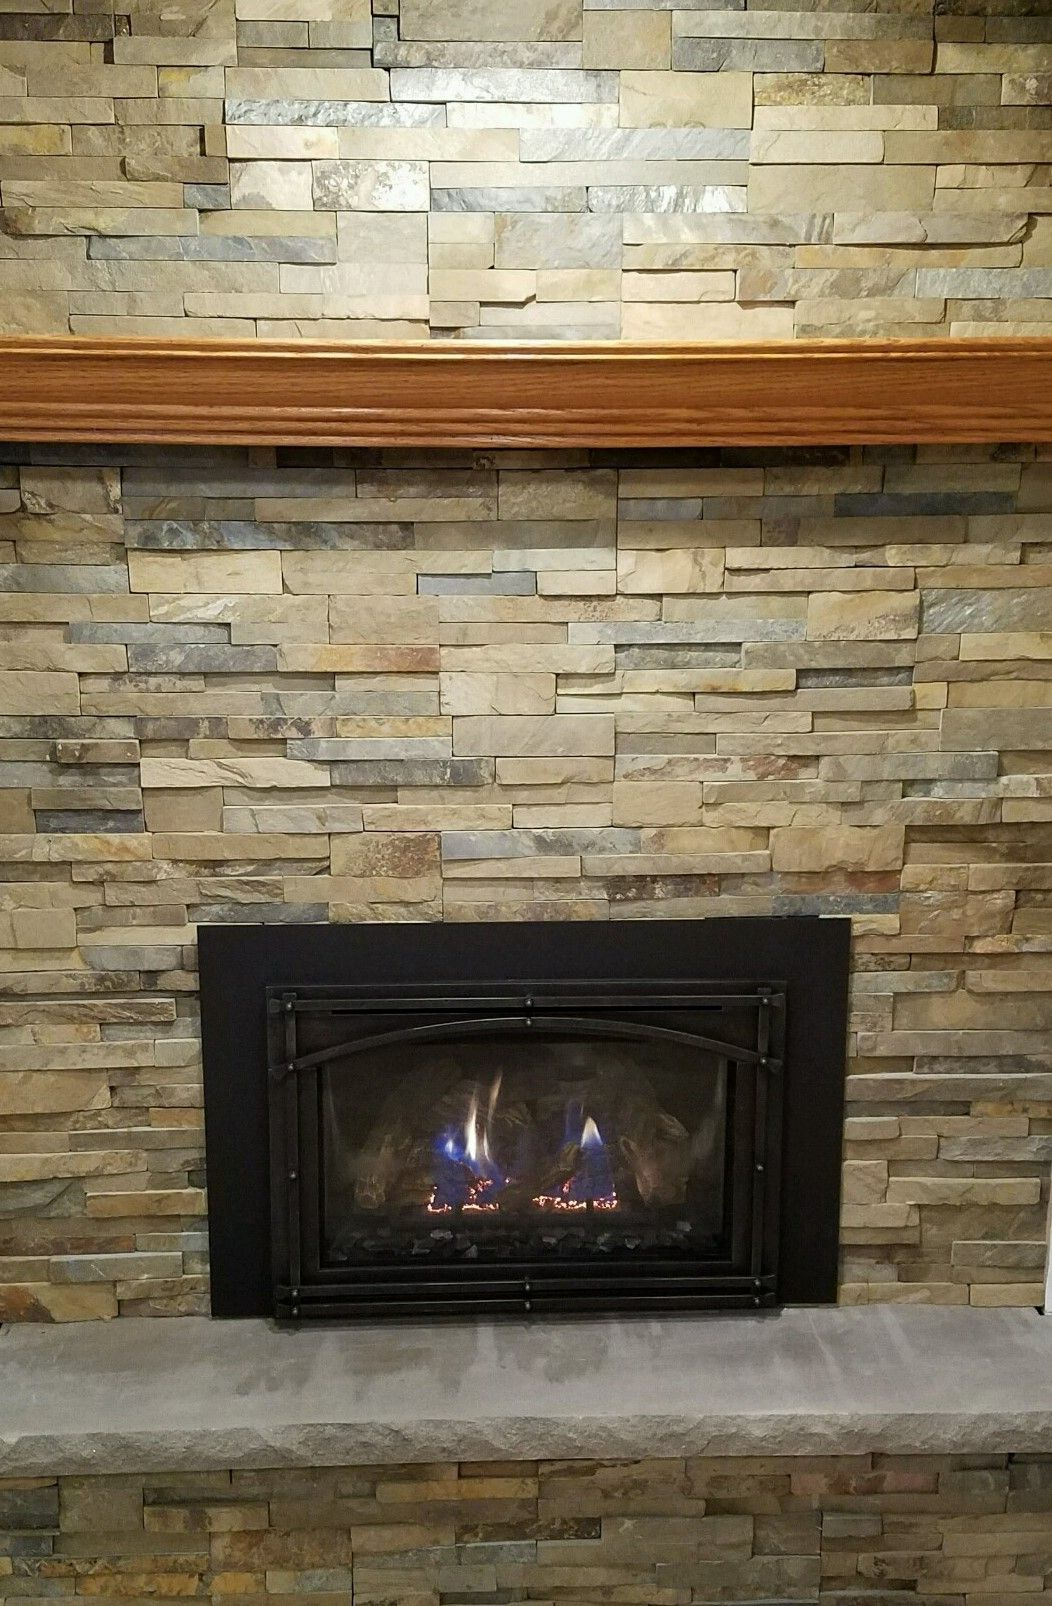 Great American Fireplace Installed This Kozy Heat Gas Insert And Re Faced The Brick With Norstone Ochre Xl Panel Stone Custom Fireplace Fireplace Gas Insert